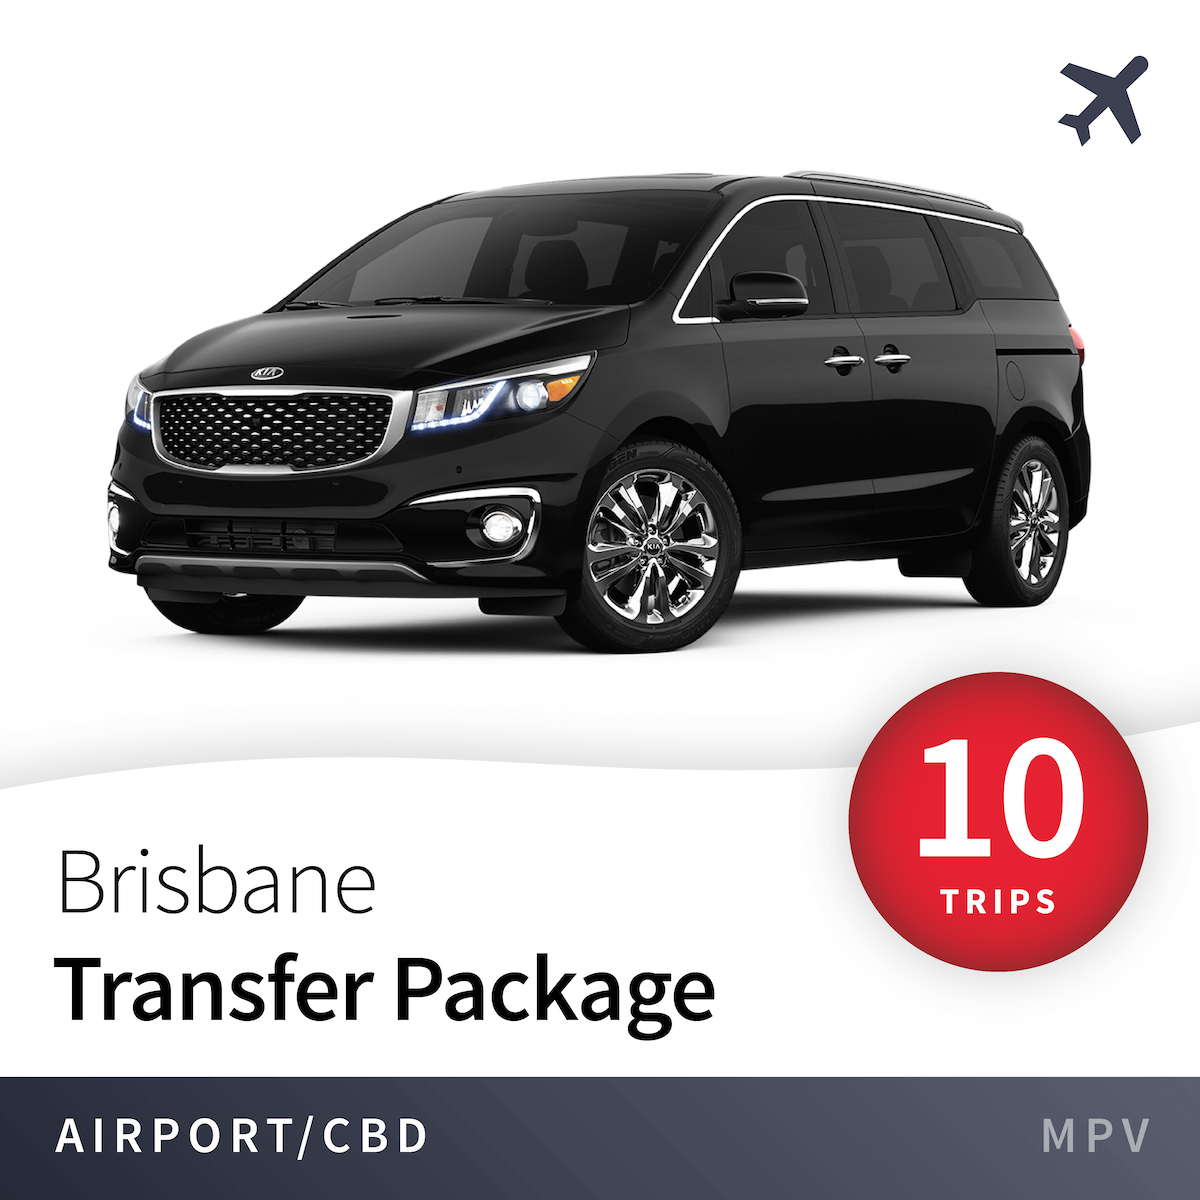 Brisbane Airport Transfer Package - MPV (10 Trips) 1